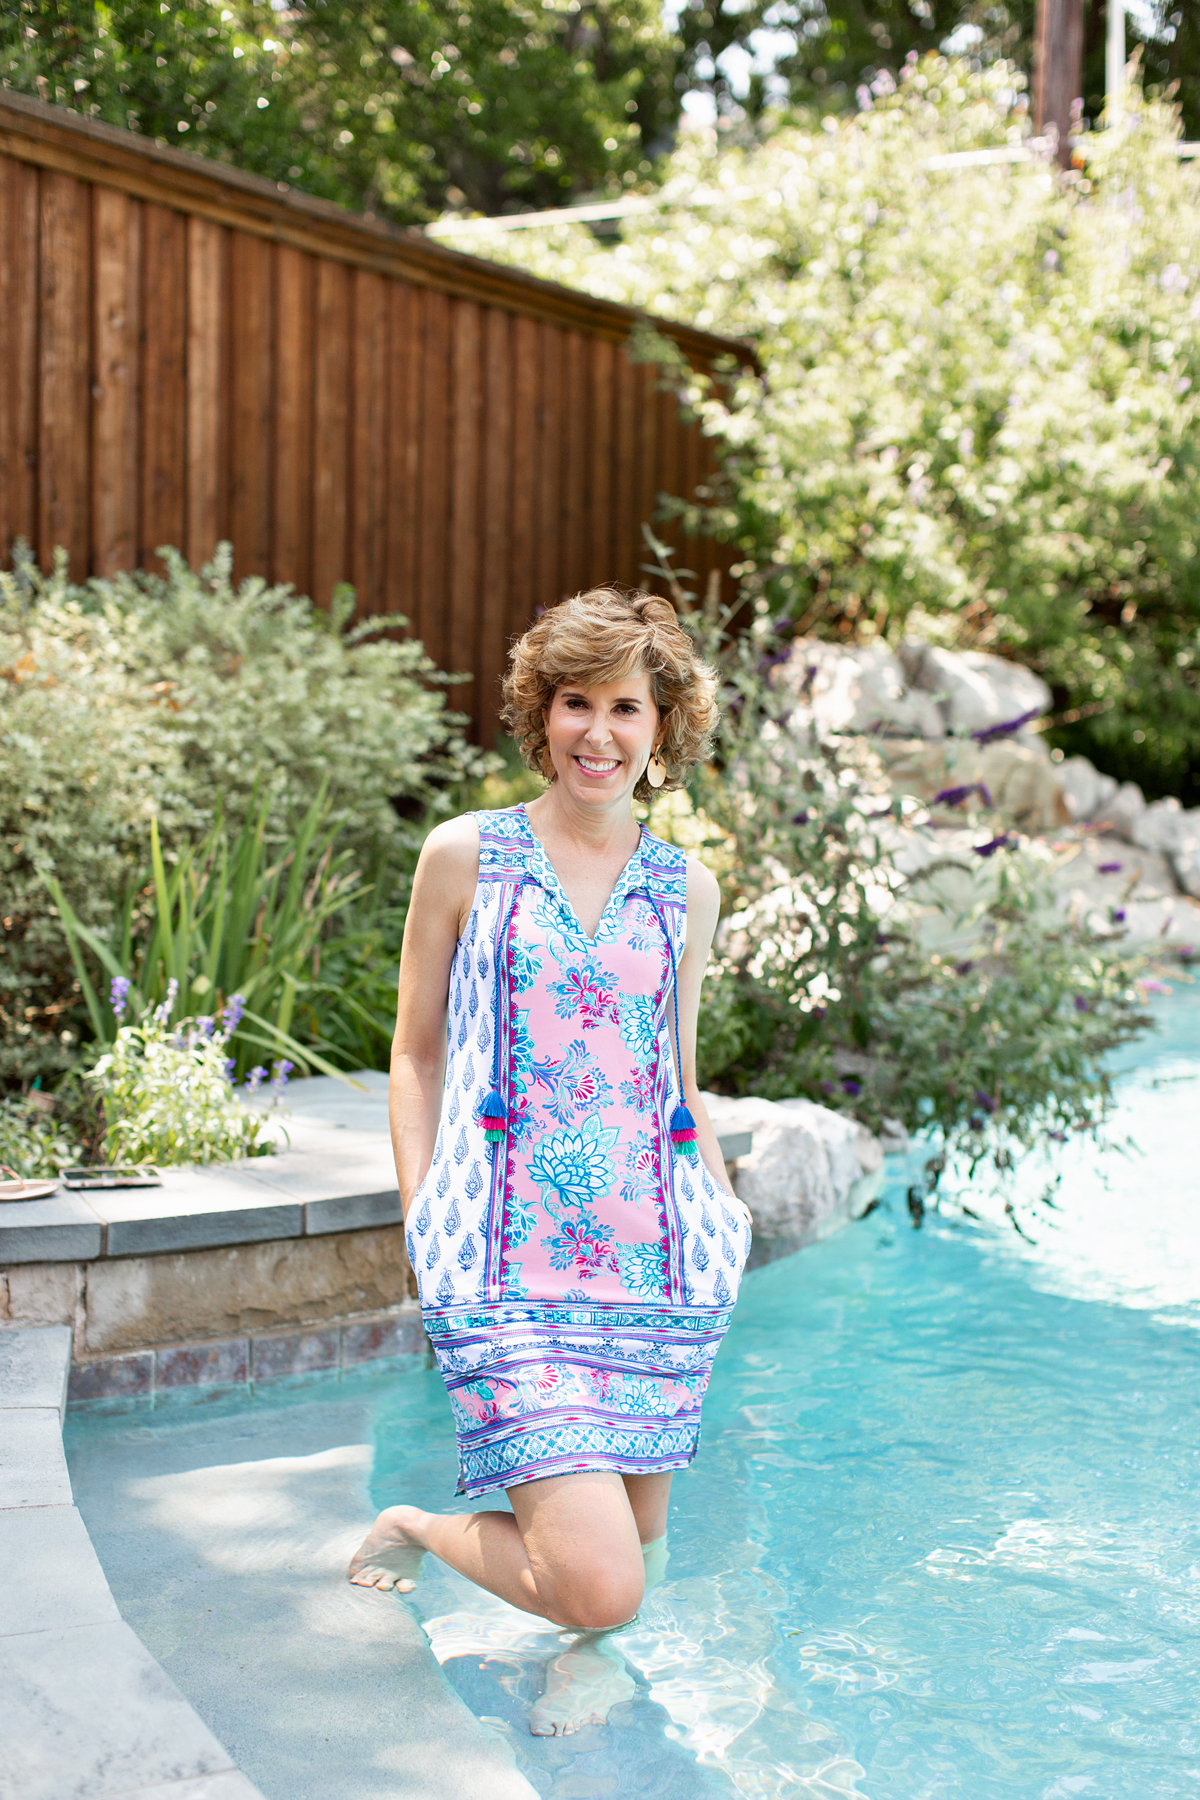 woman in cabana life dress standing in the pool